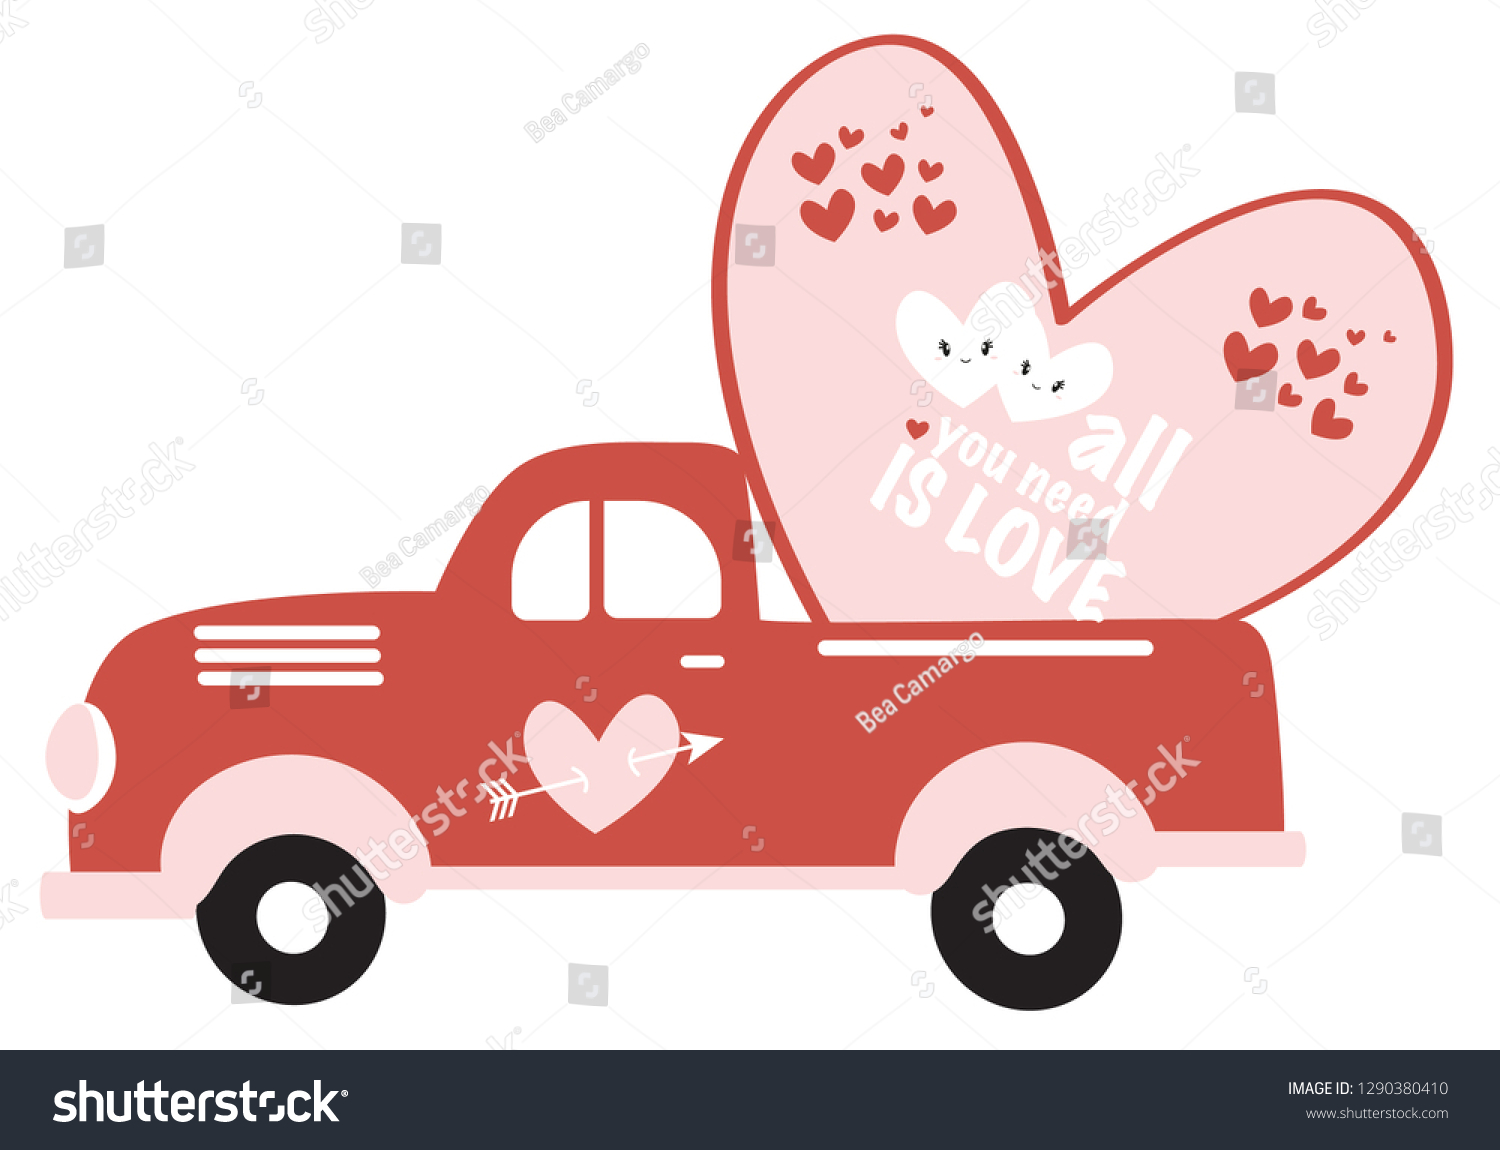 Valentines Vintage Red Truck Valentines Day Stock Vector Royalty Free 1290380410